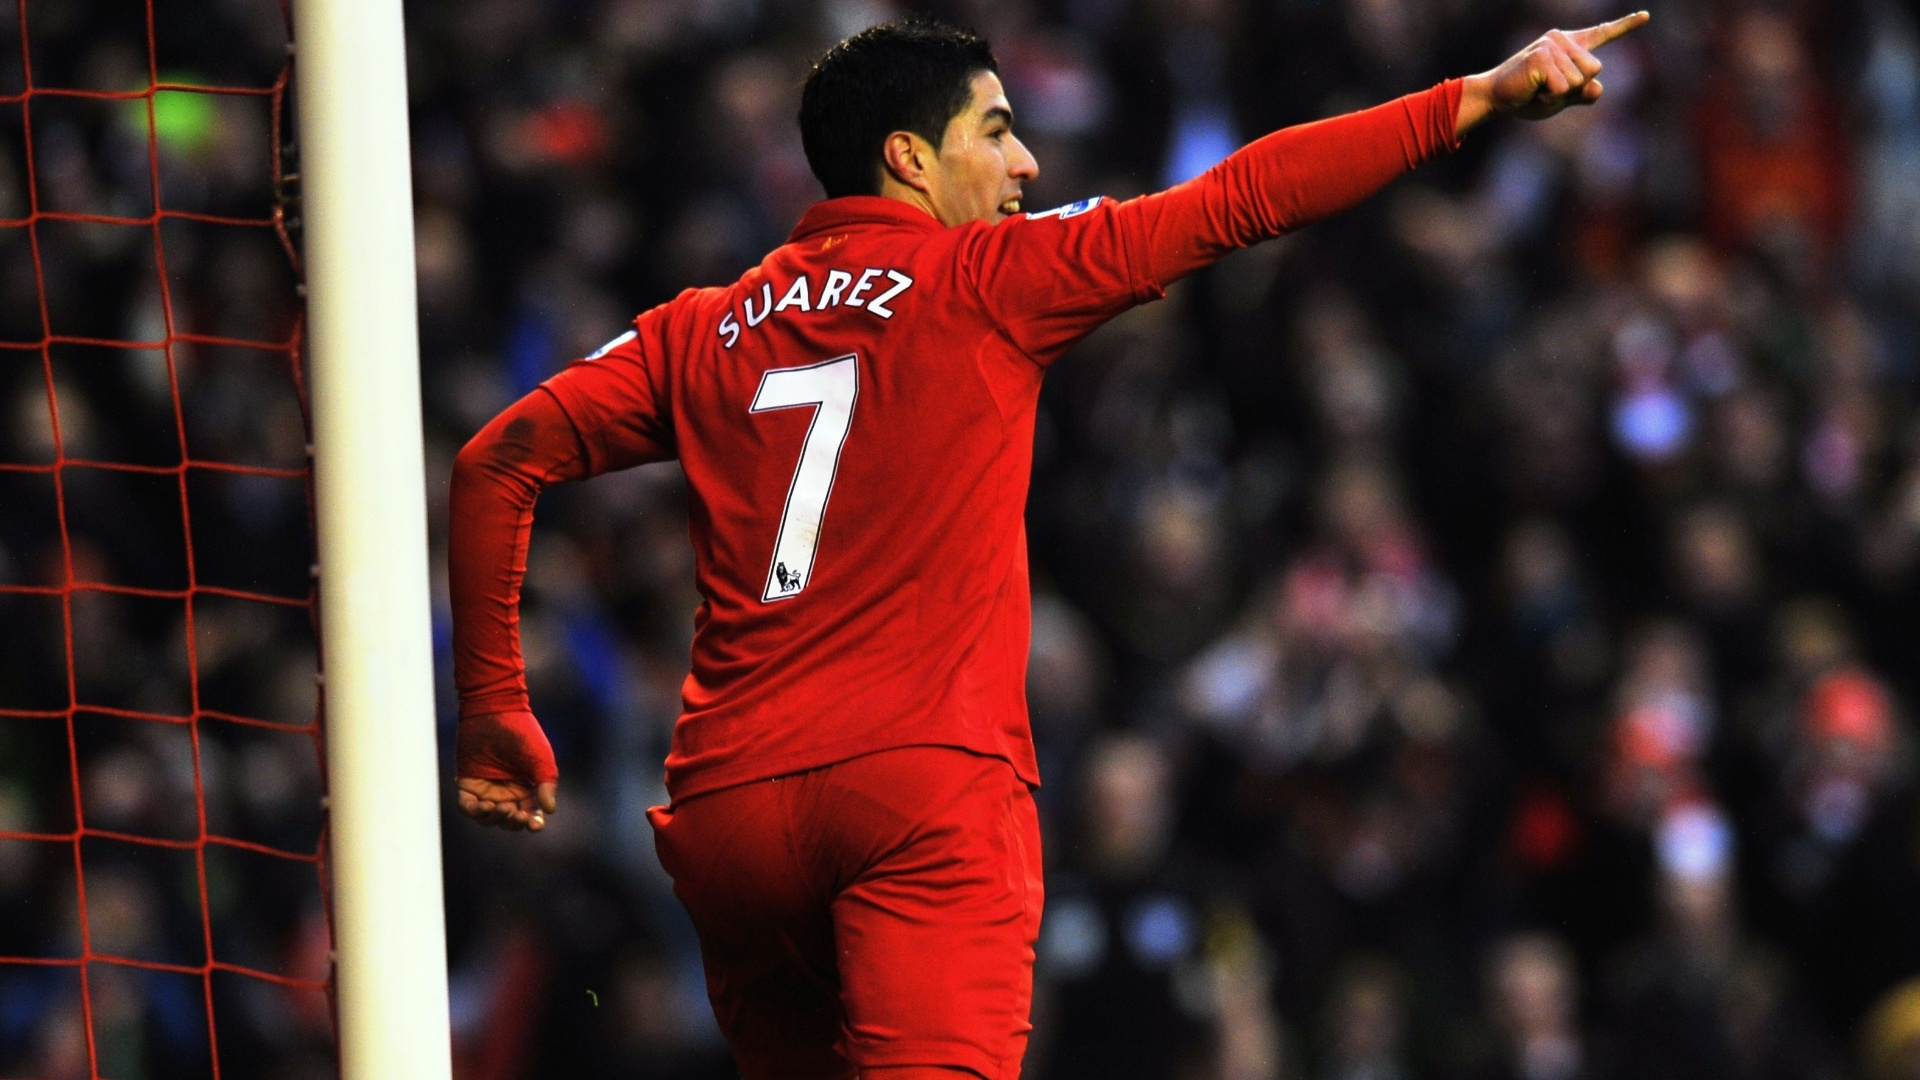 The football player of Liverpool Luis Suarez wallpapers and images 1920x1080